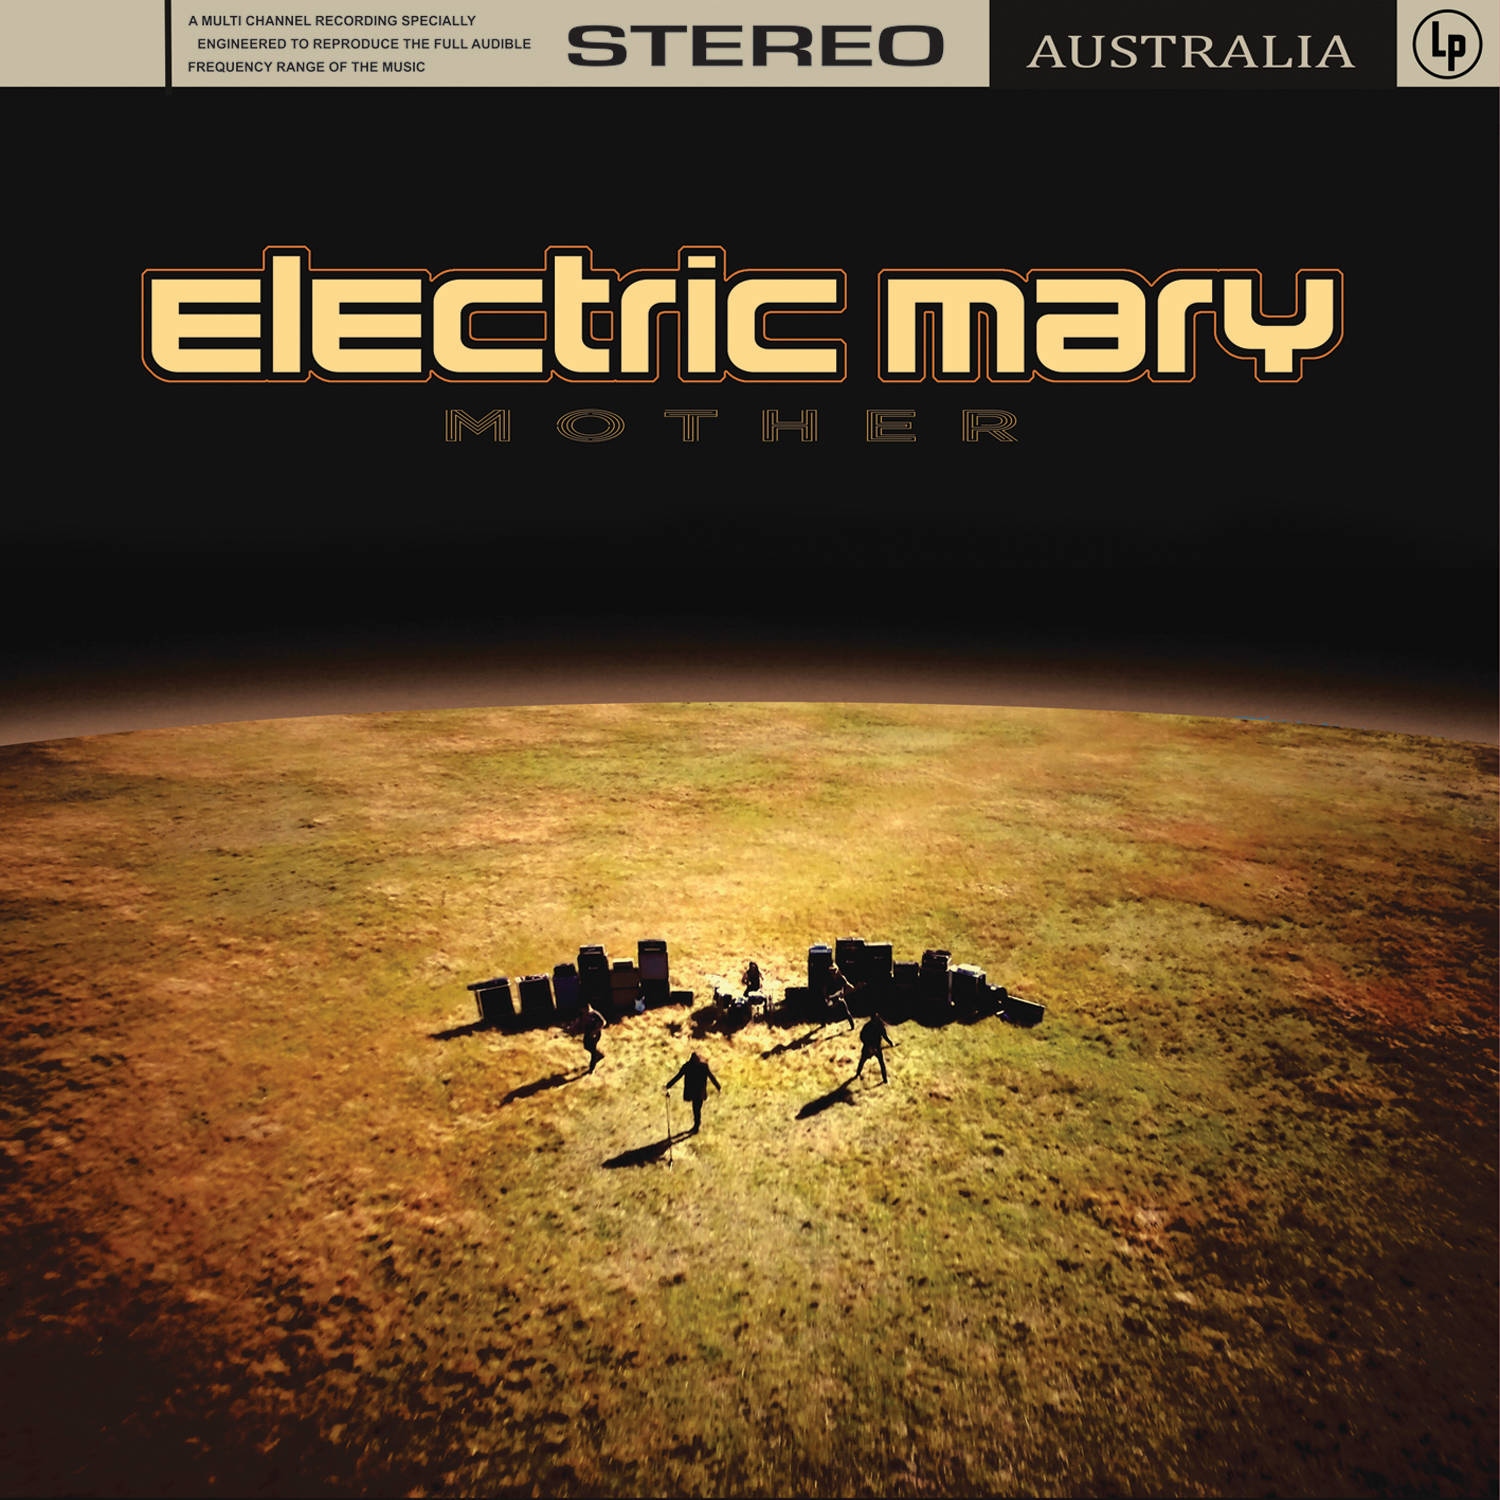 ELECTRIC MARY_med.jpg